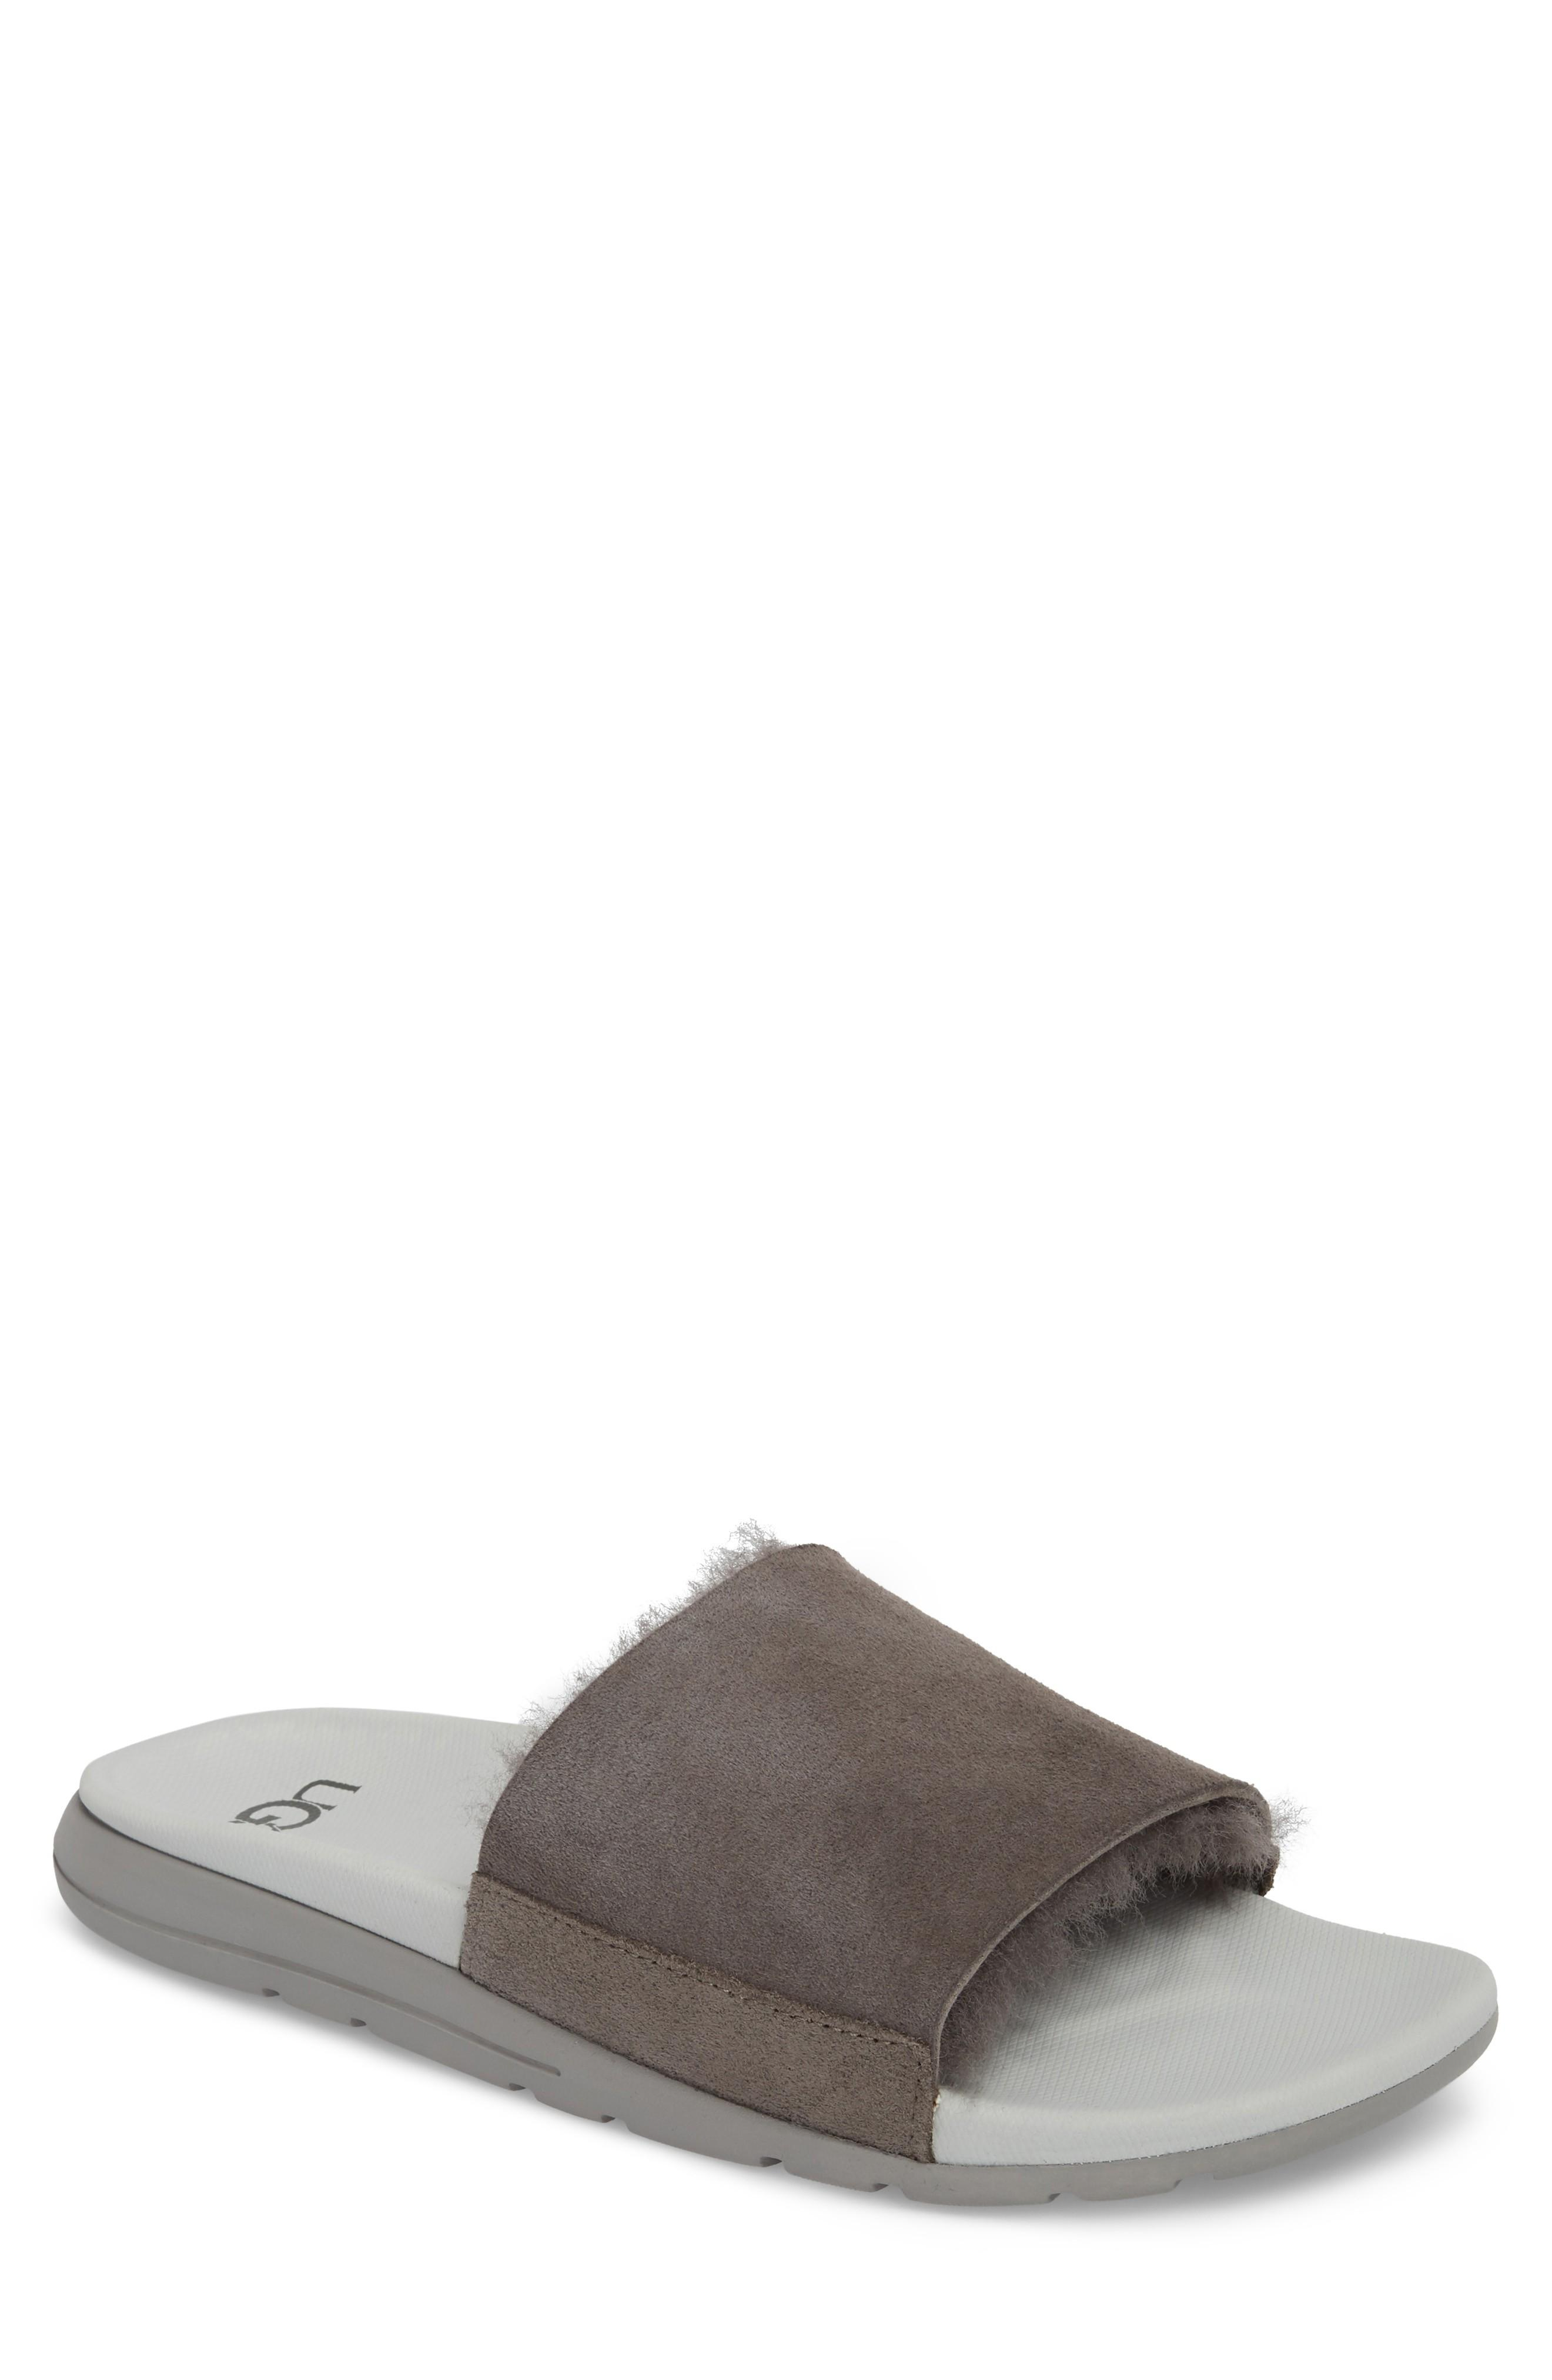 d3460a836a4 Ugg Xavier Tf Genuine Shearling Slide Sandal in Charcoal Leather